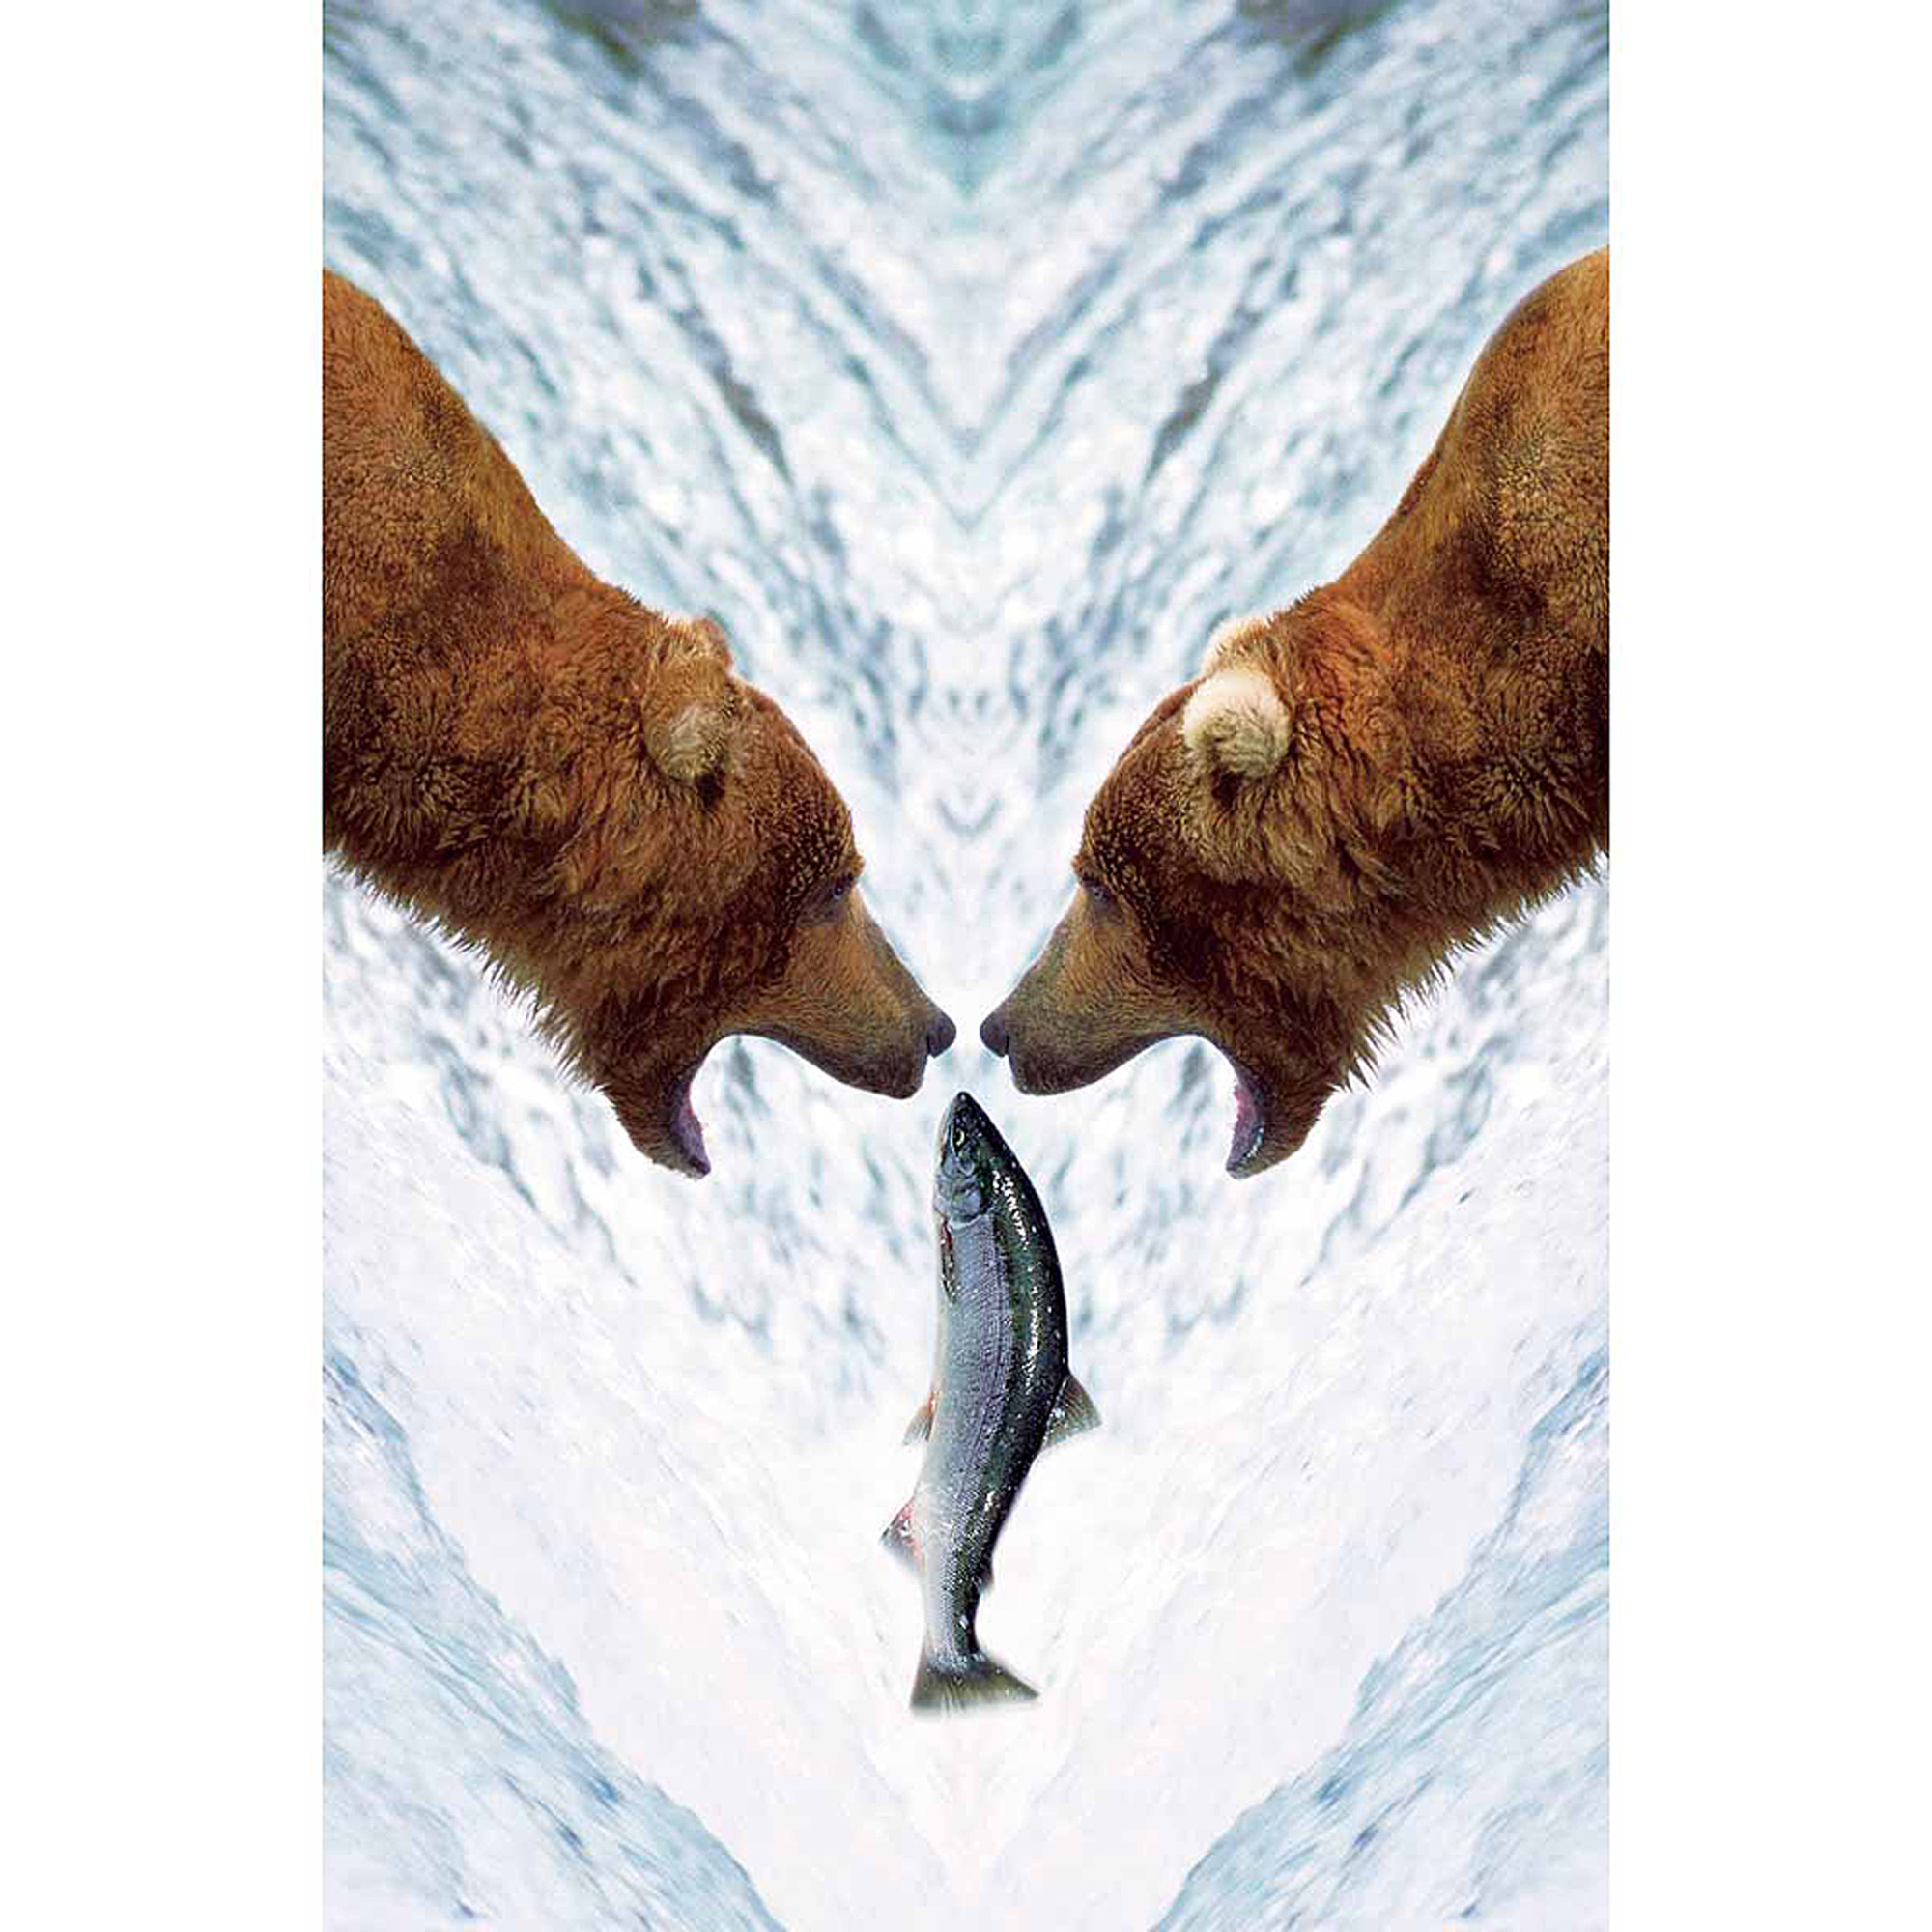 Two Bears One Fish Photography Art